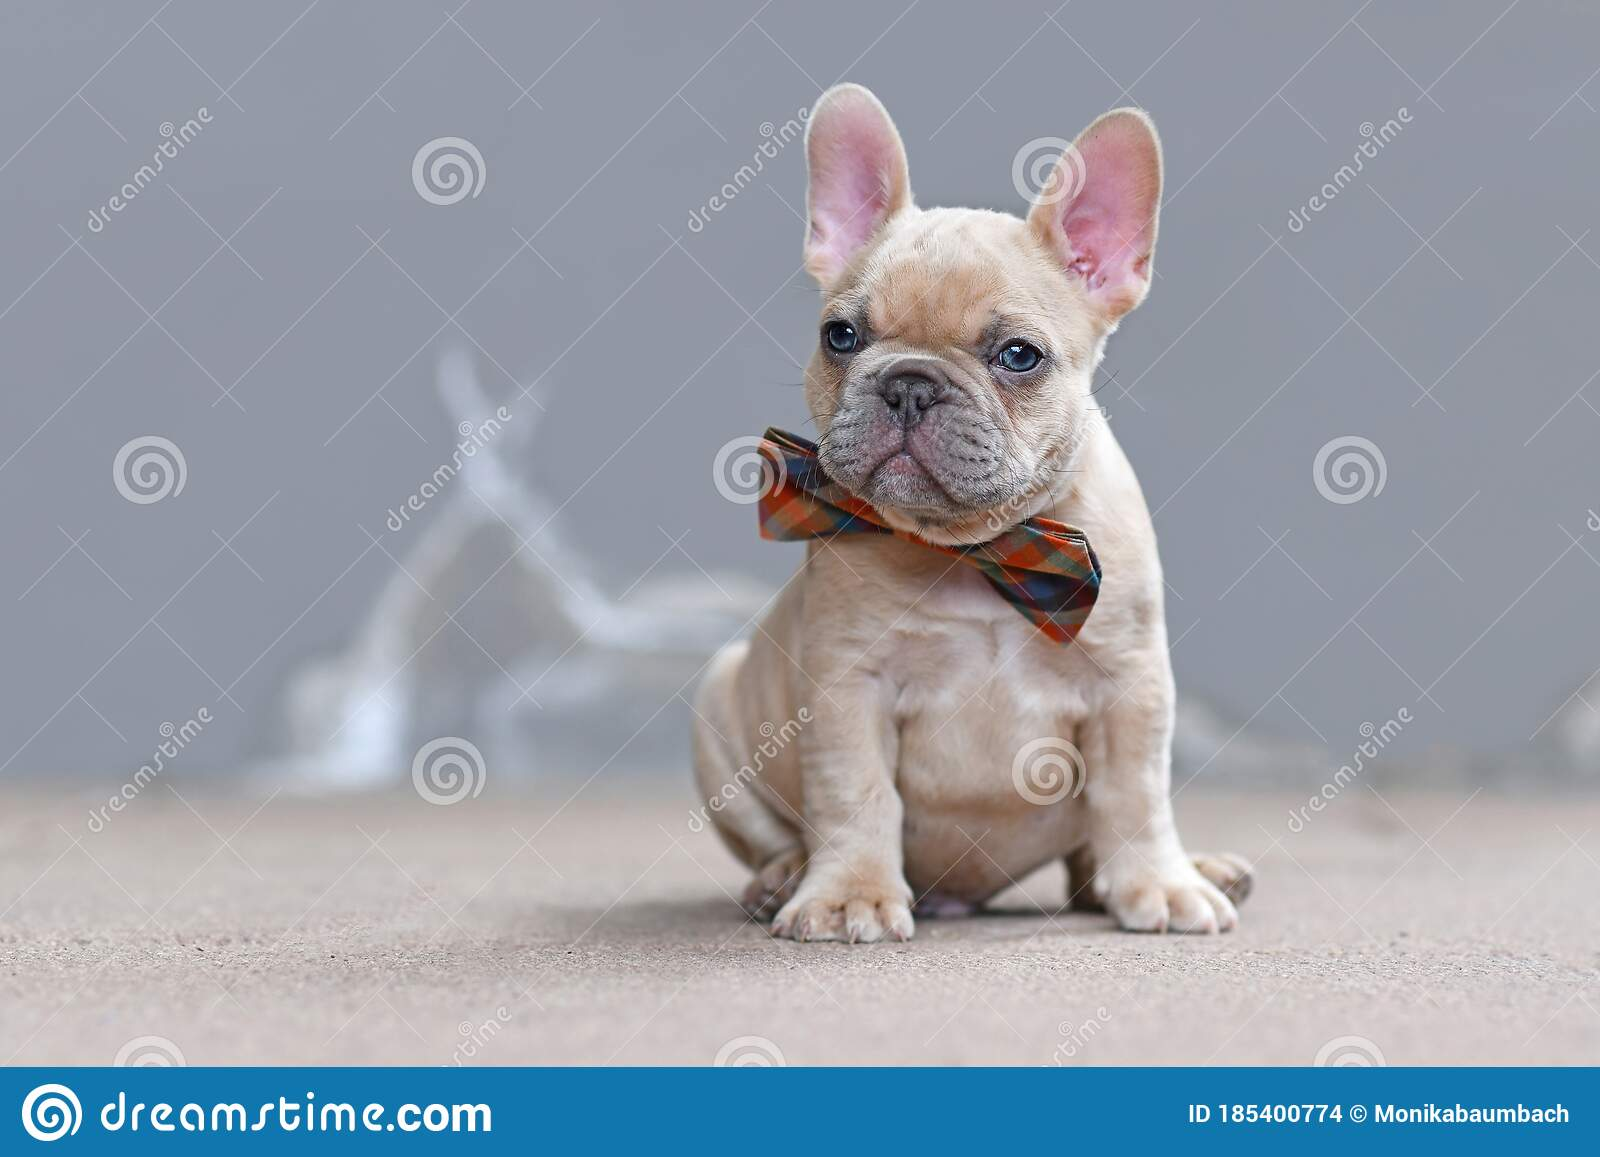 Cute Small 7 Weeks Lilac Fawn Colored French Bulldog Dog Puppy Wearing A Bow Tie In Front Of Gray Wall Stock Photo Image Of Portrait Domestic 185400774